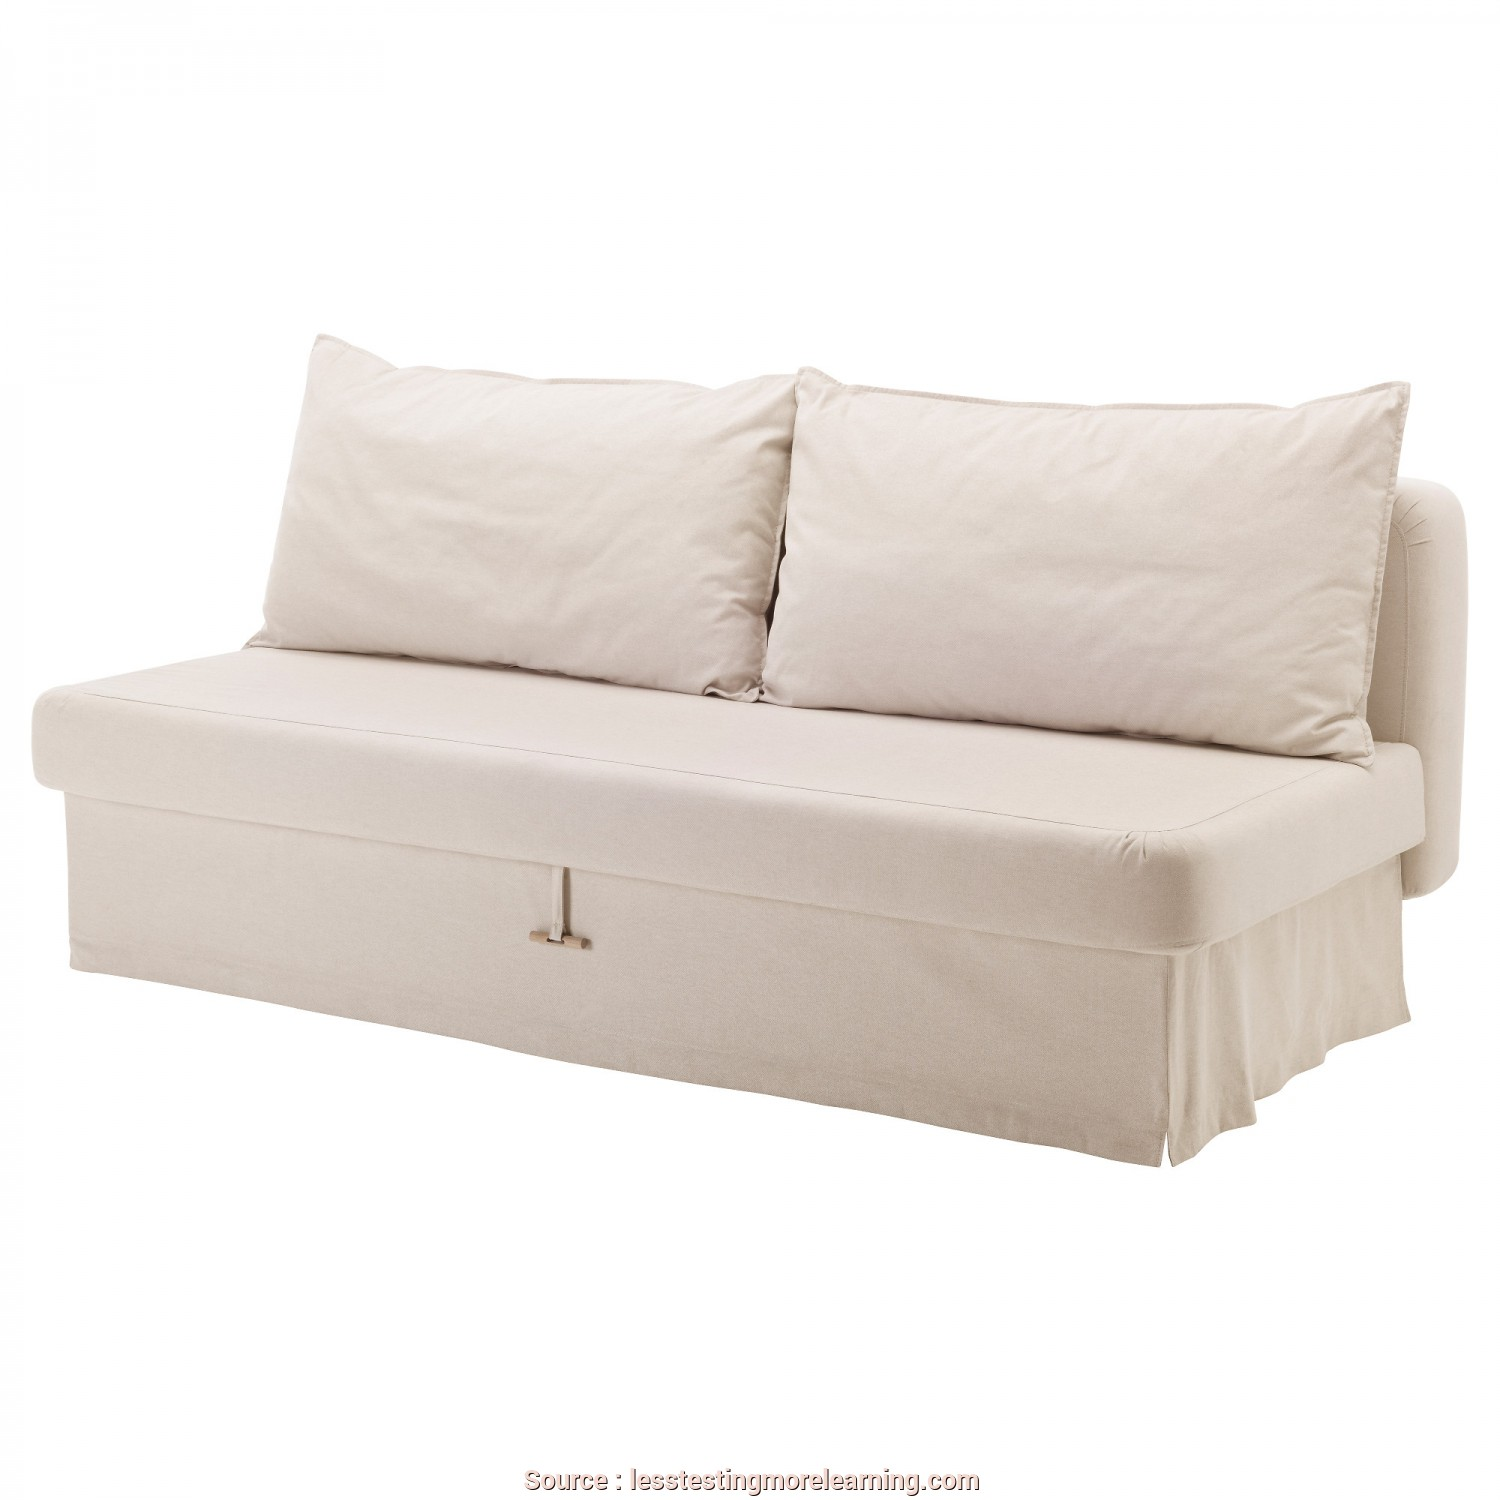 Futon Ikea Malaysia, Completare Furniture: Sleeper Chair Ikea With Different Styles, Fabrics To